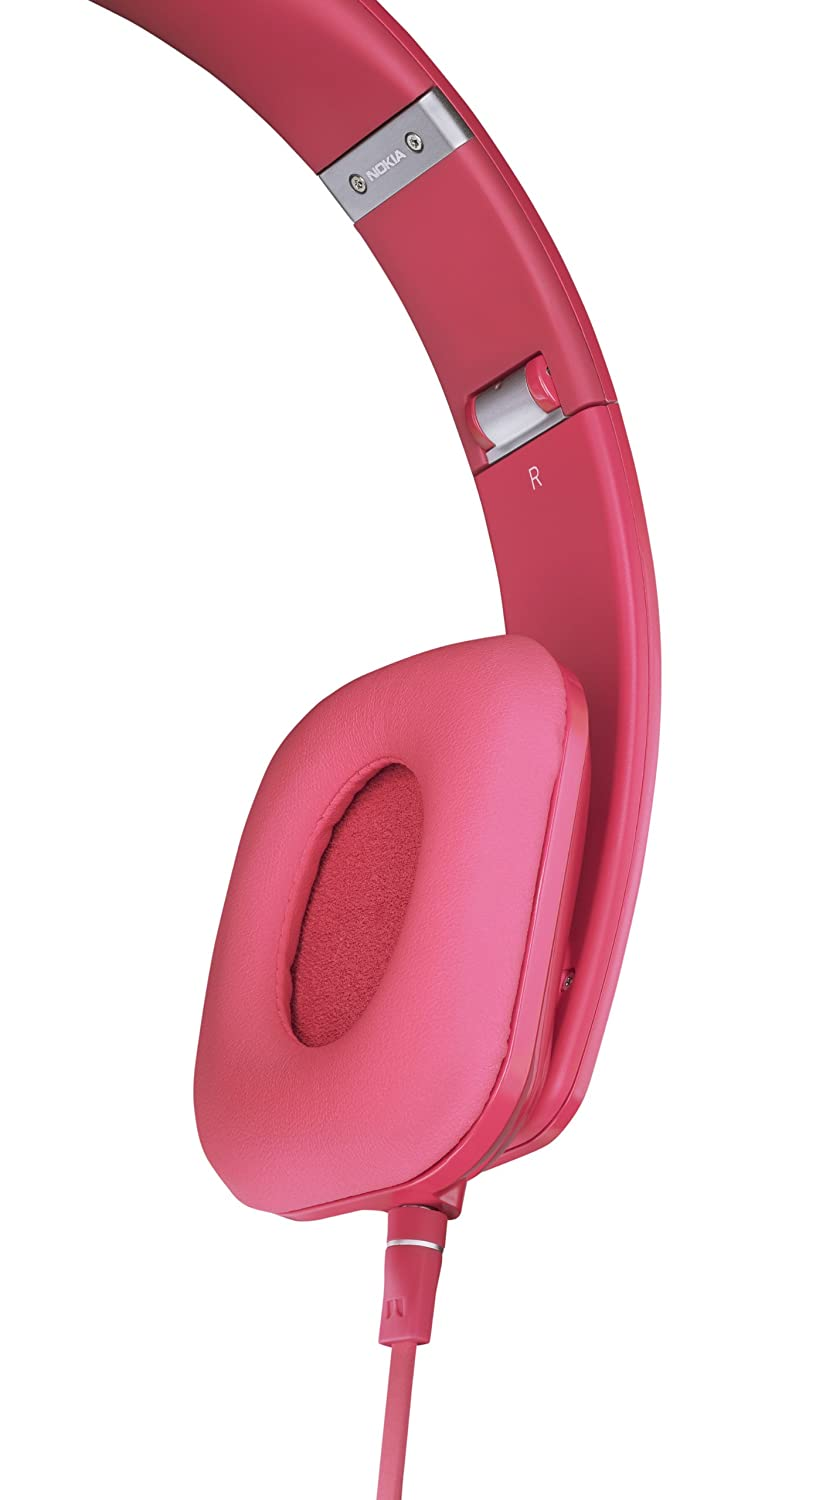 NOKIA-WH-930-CUFFIE-STEREO-HD-3-5-MM-ROSA-S238380